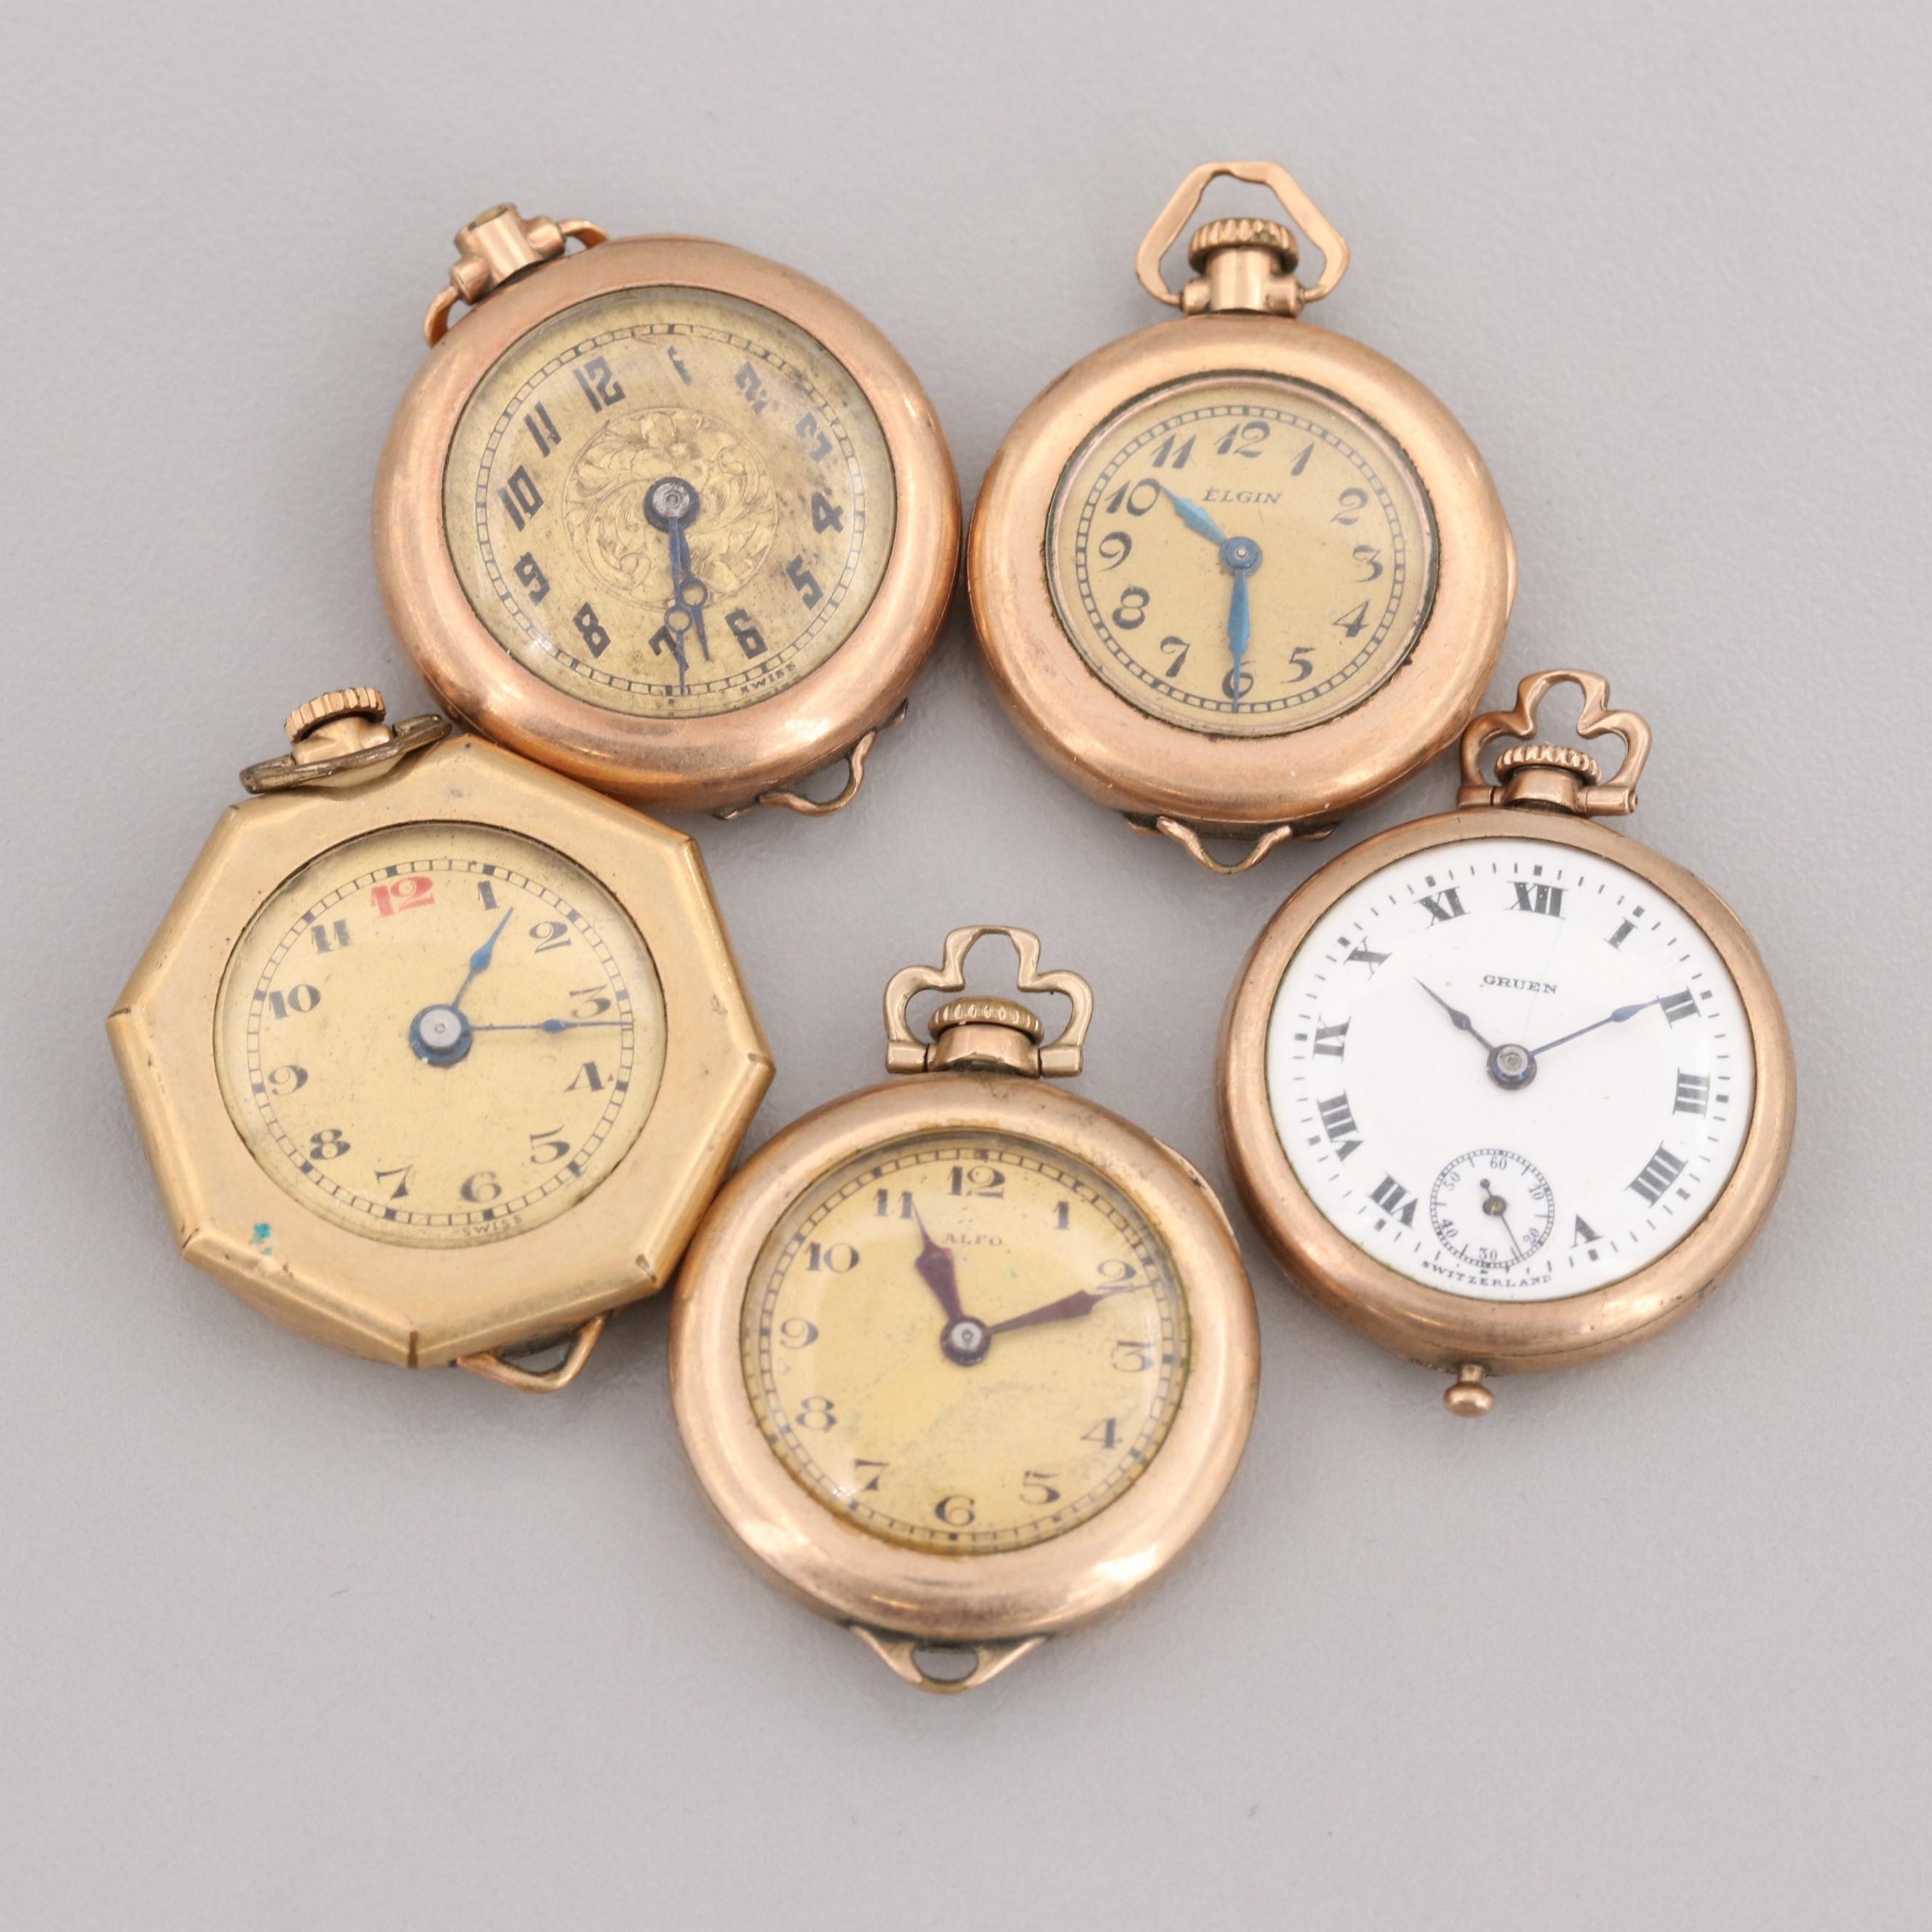 Assortment of Gold Filled Convertible Pocket Watches Featuring Gruen and Elgin